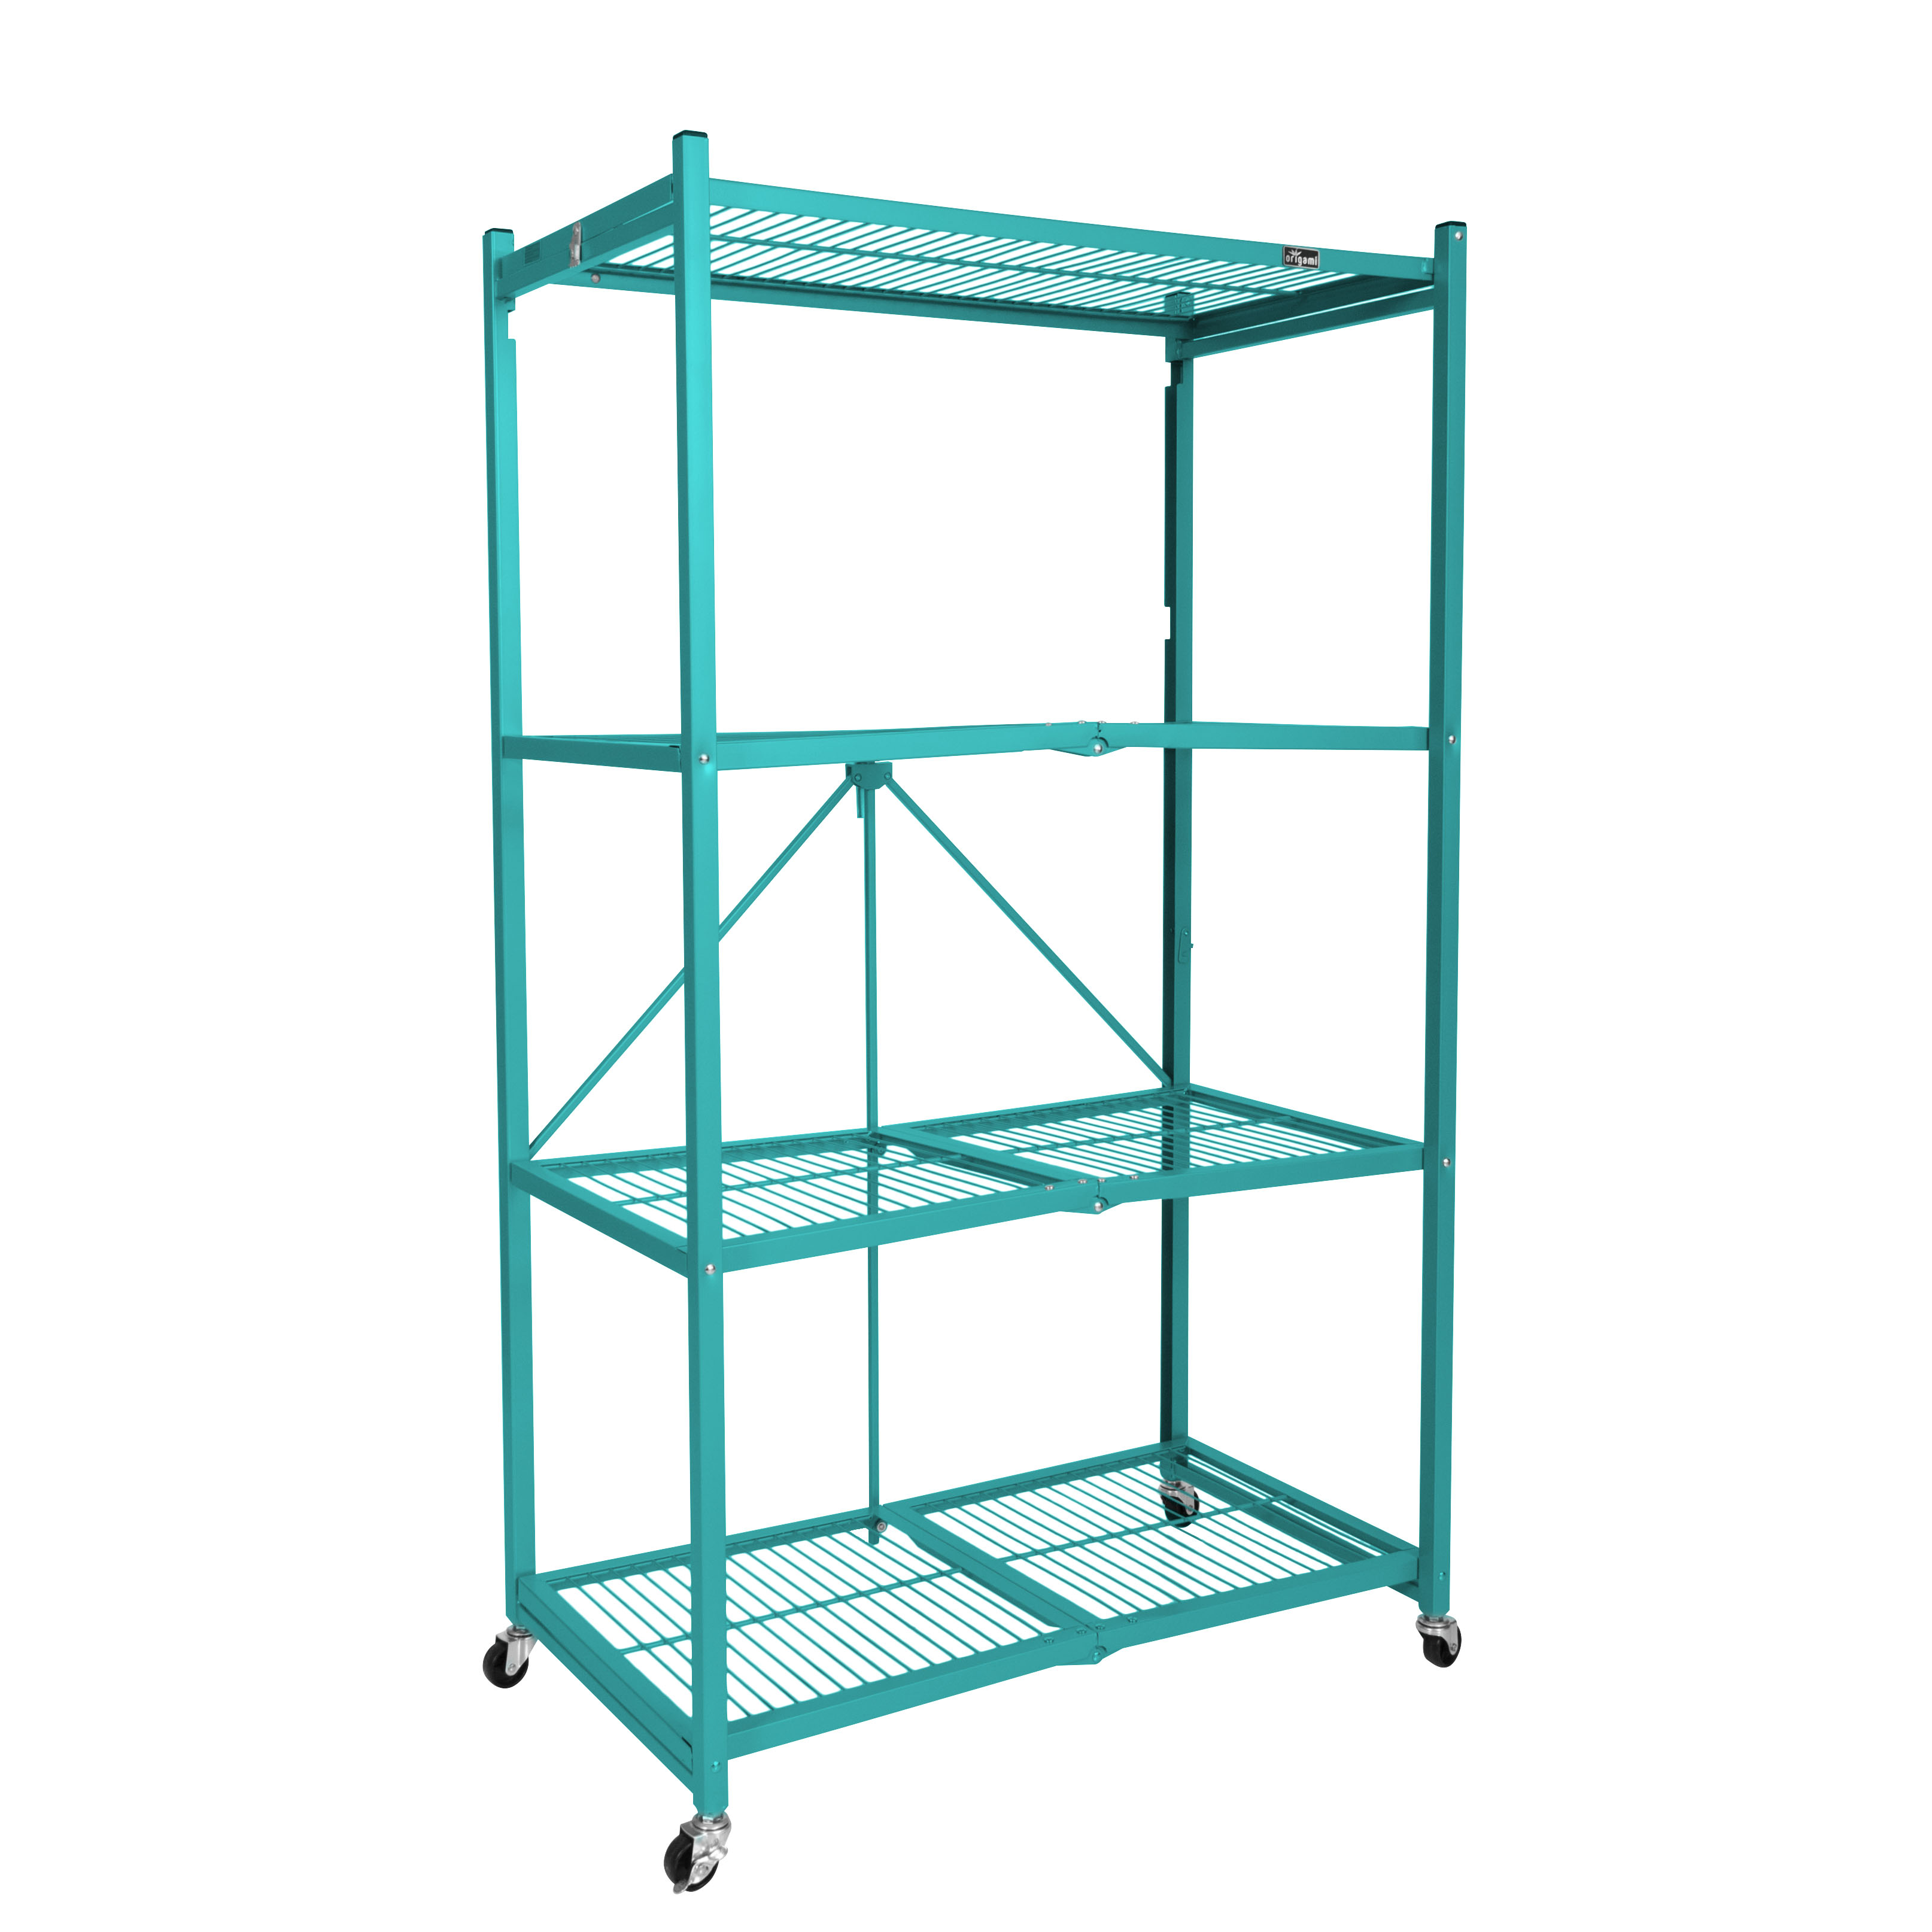 "Origami Wheeled 4-Shelf Folding Metal Steel Wire Shelving Teal (21"" x 36"" x 60"")"